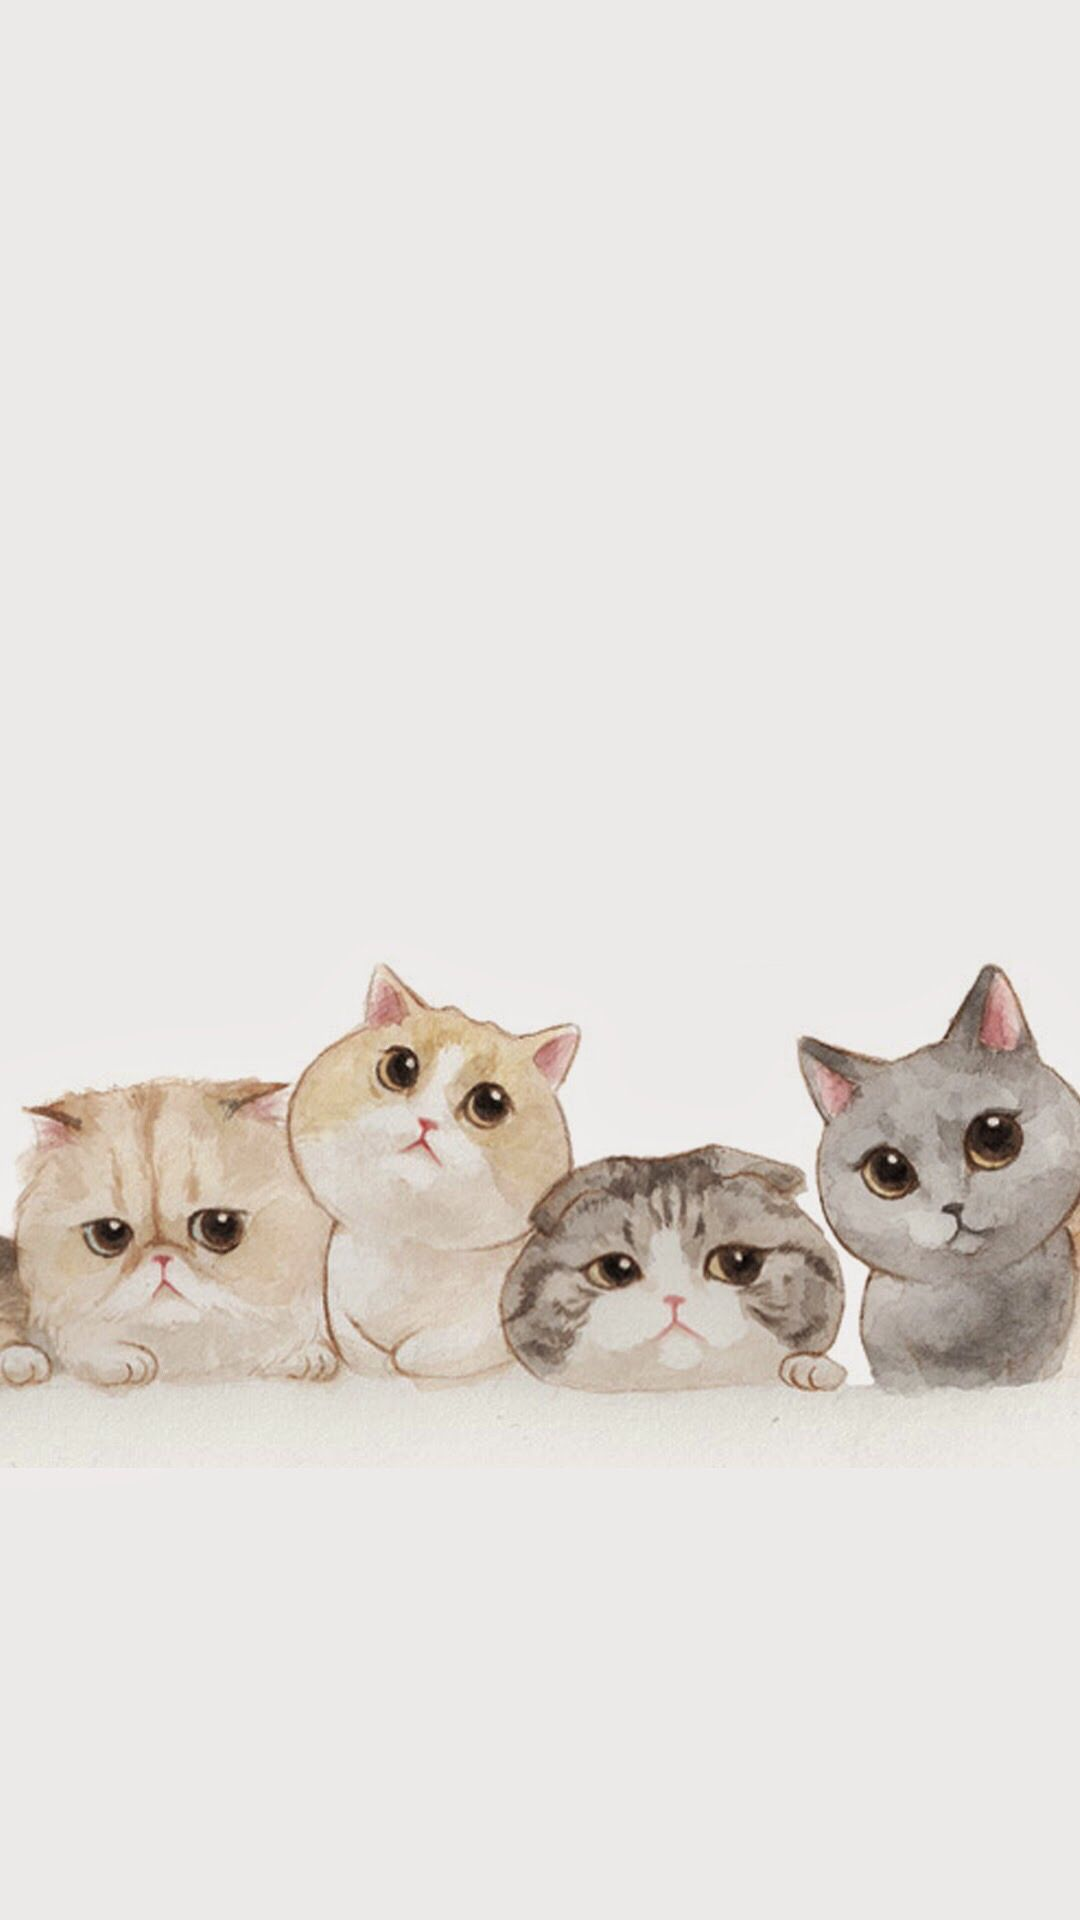 Pin by Darya on Cats | Pinterest | Wallpaper, Draw lips and Drawing ...